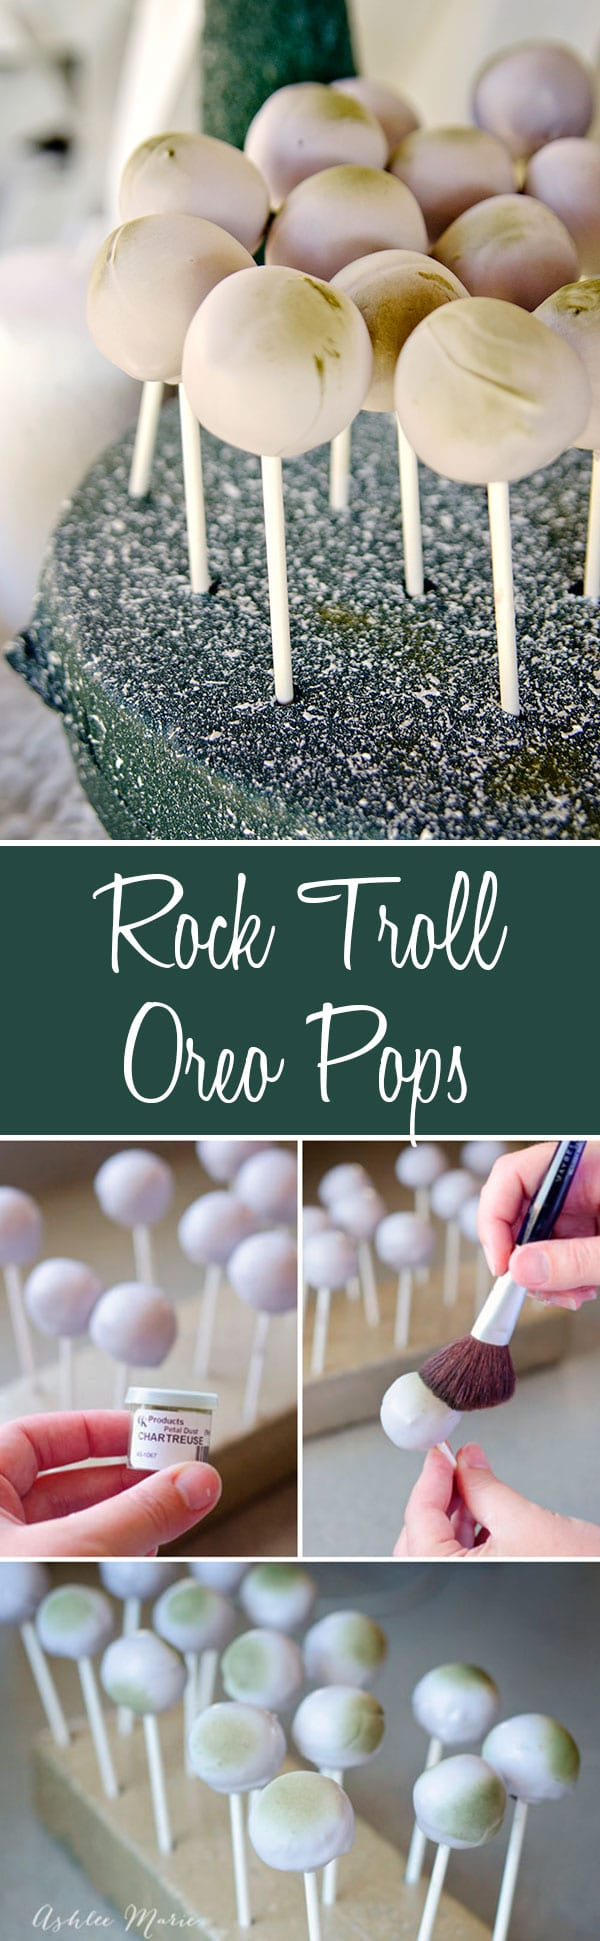 create oreo truffles that look like the rock trolls from Frozen